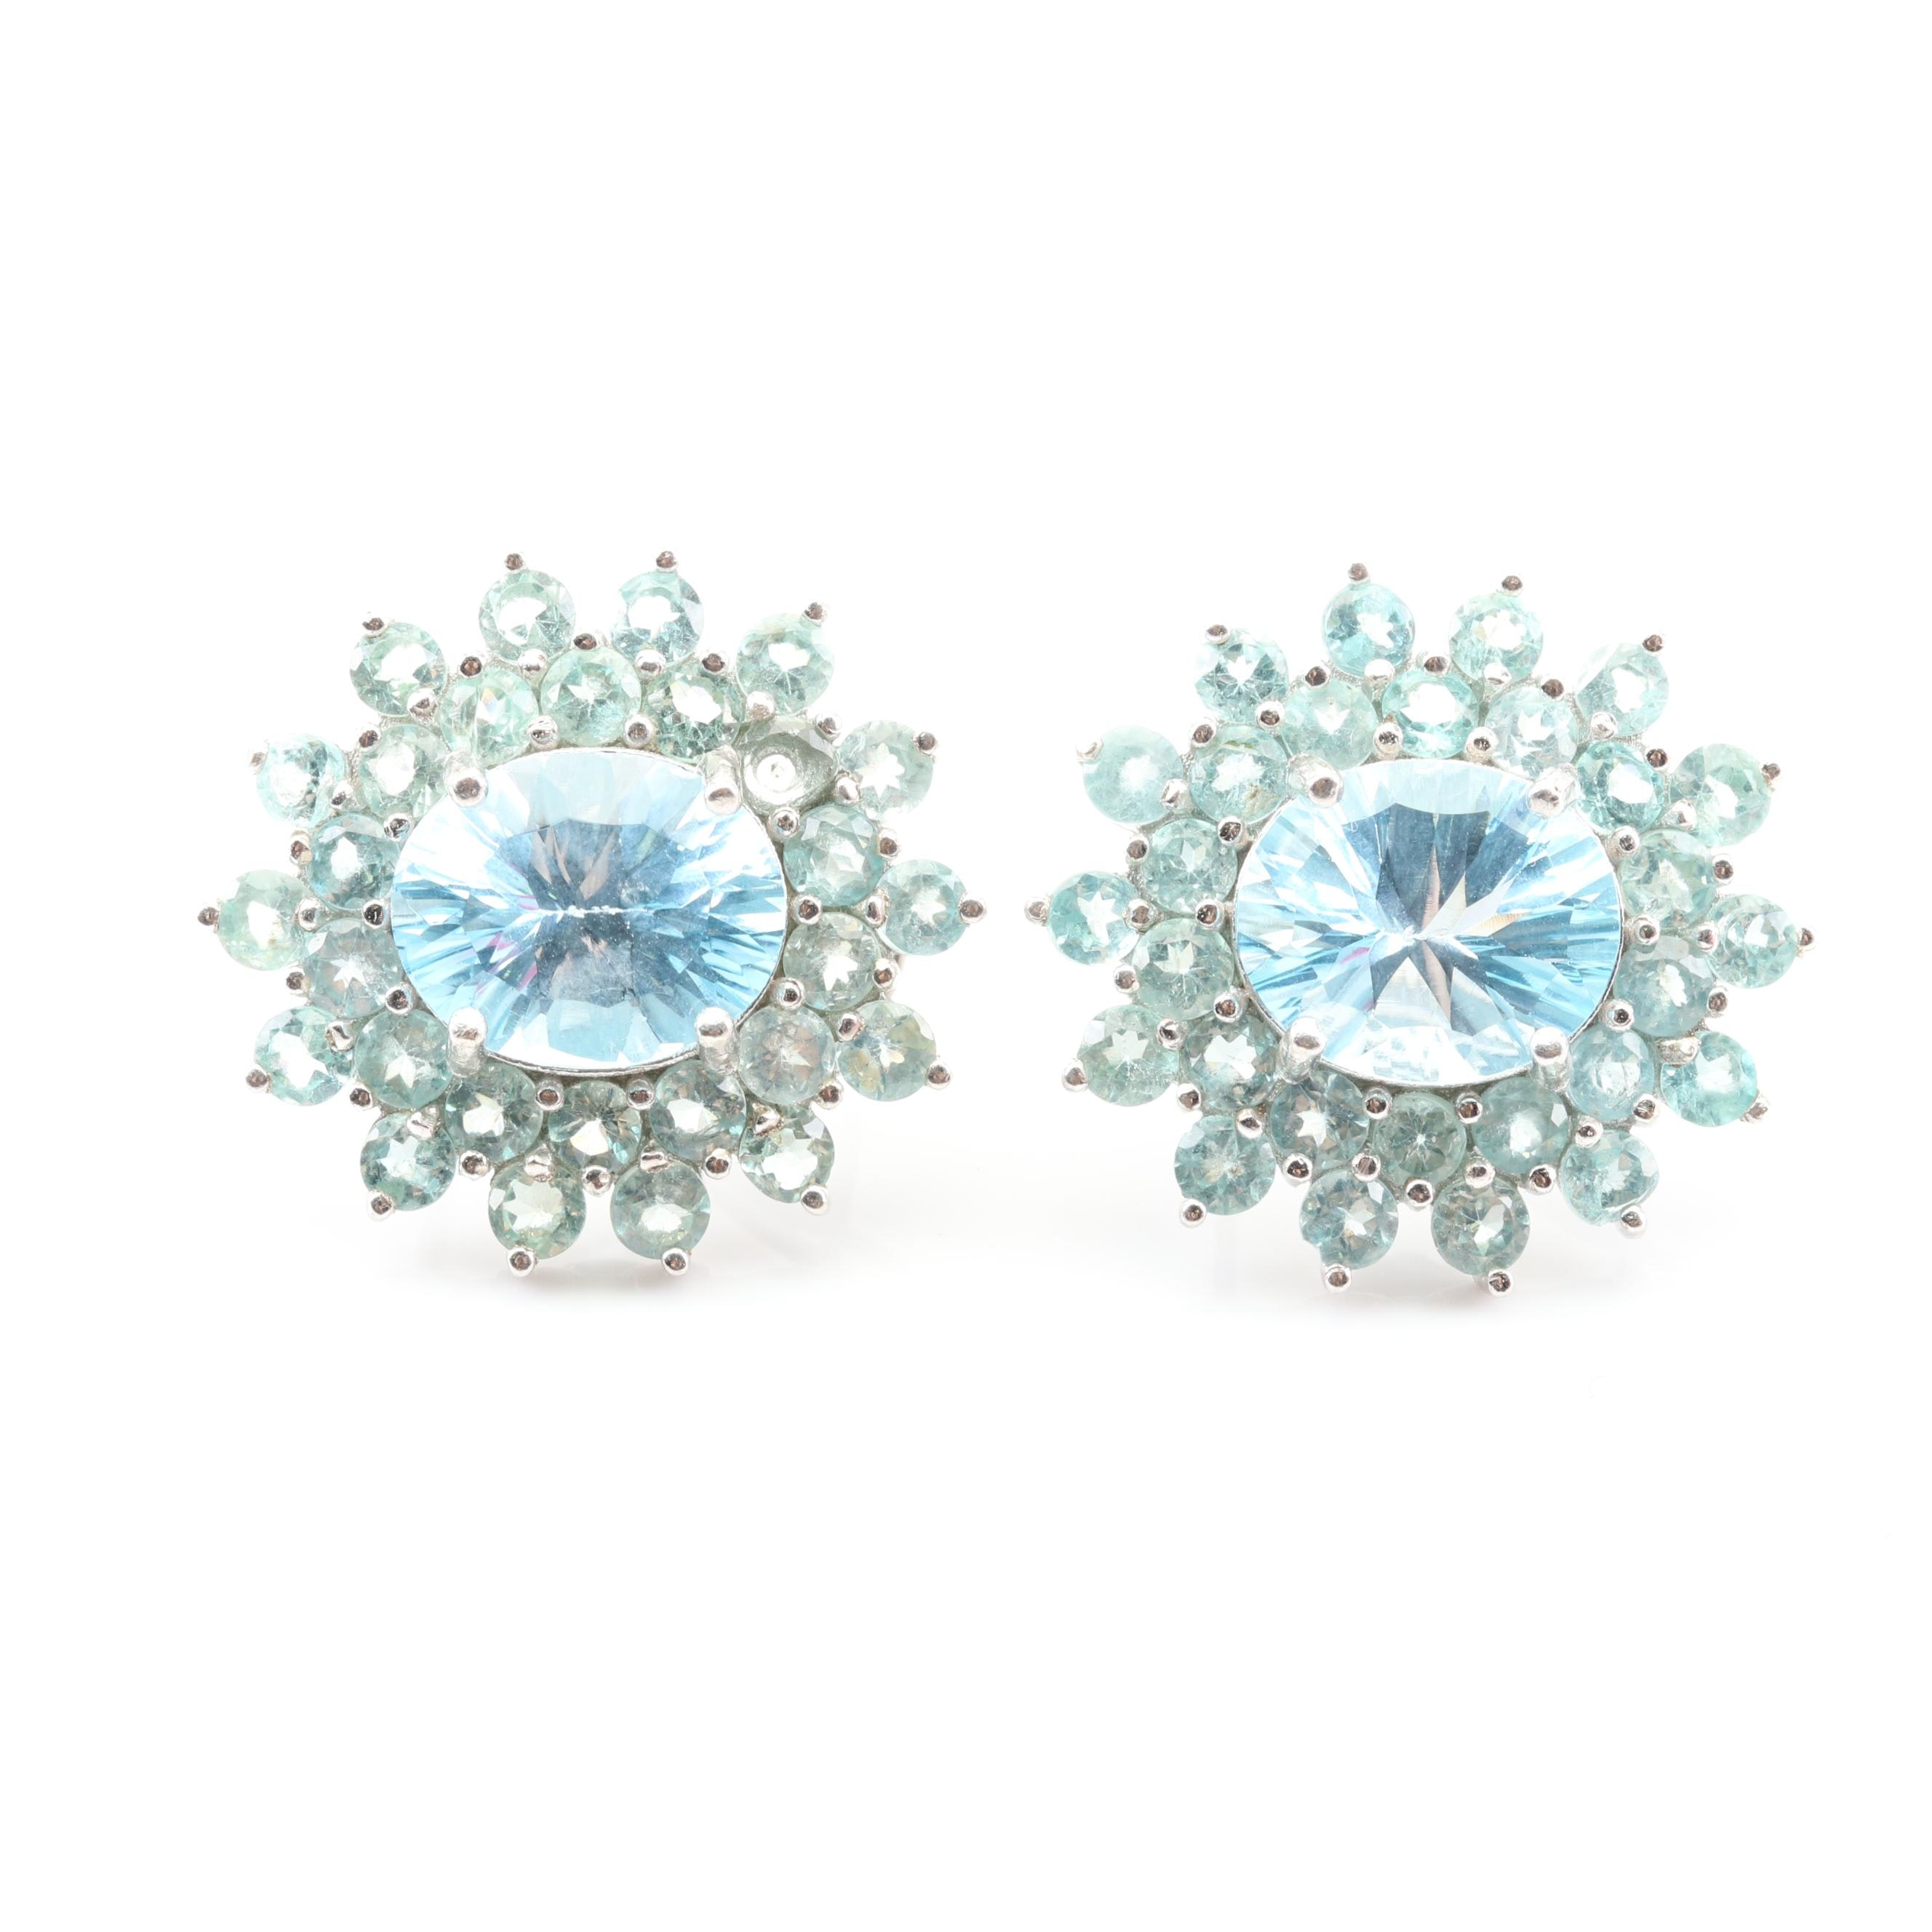 Sterling Silver 11.08 CTW Blue Topaz and 4.48 CTW Apatite Earrings